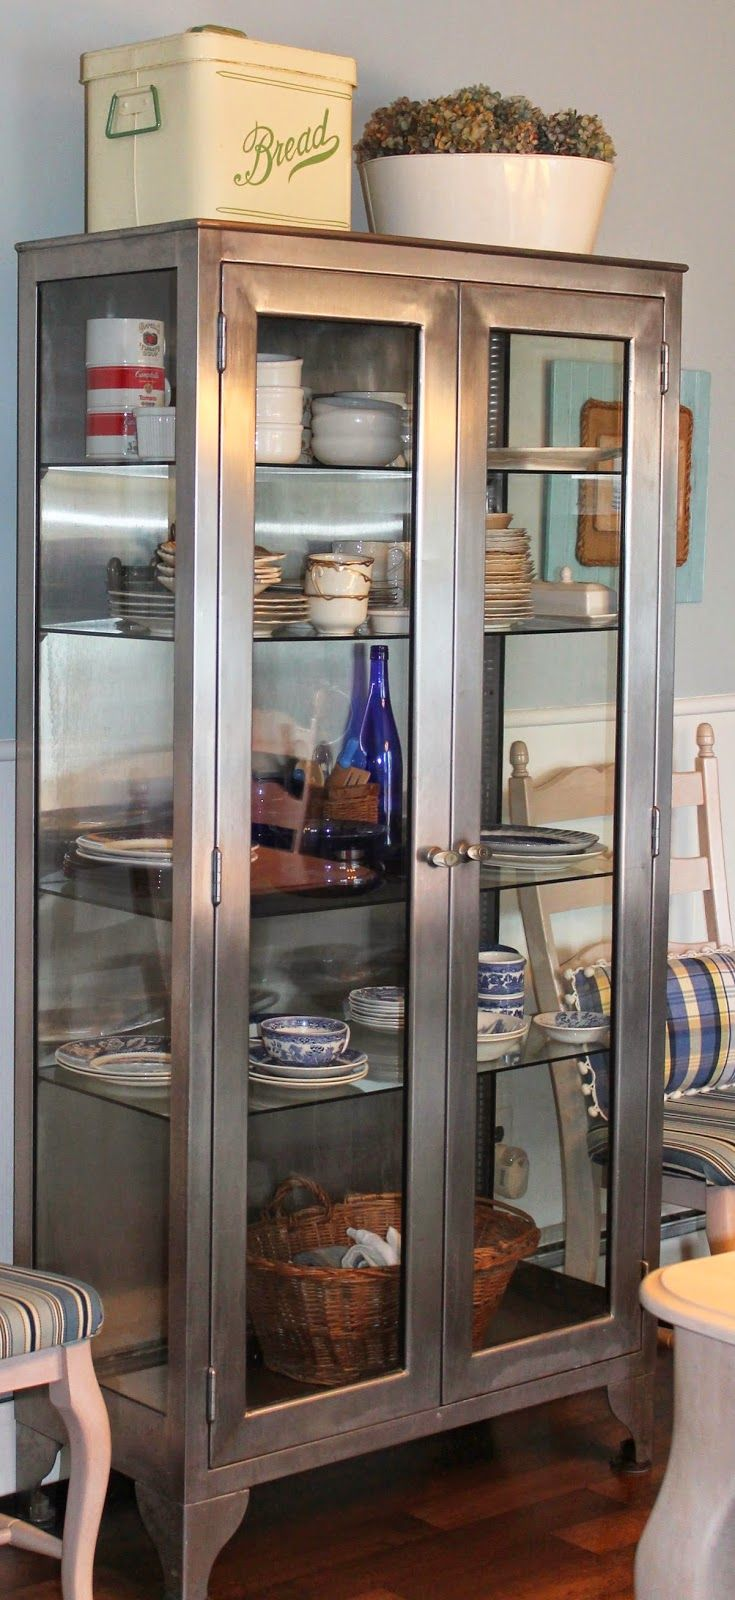 Antique Stainless Steel Cabinet | Stainless steel cabinets ...